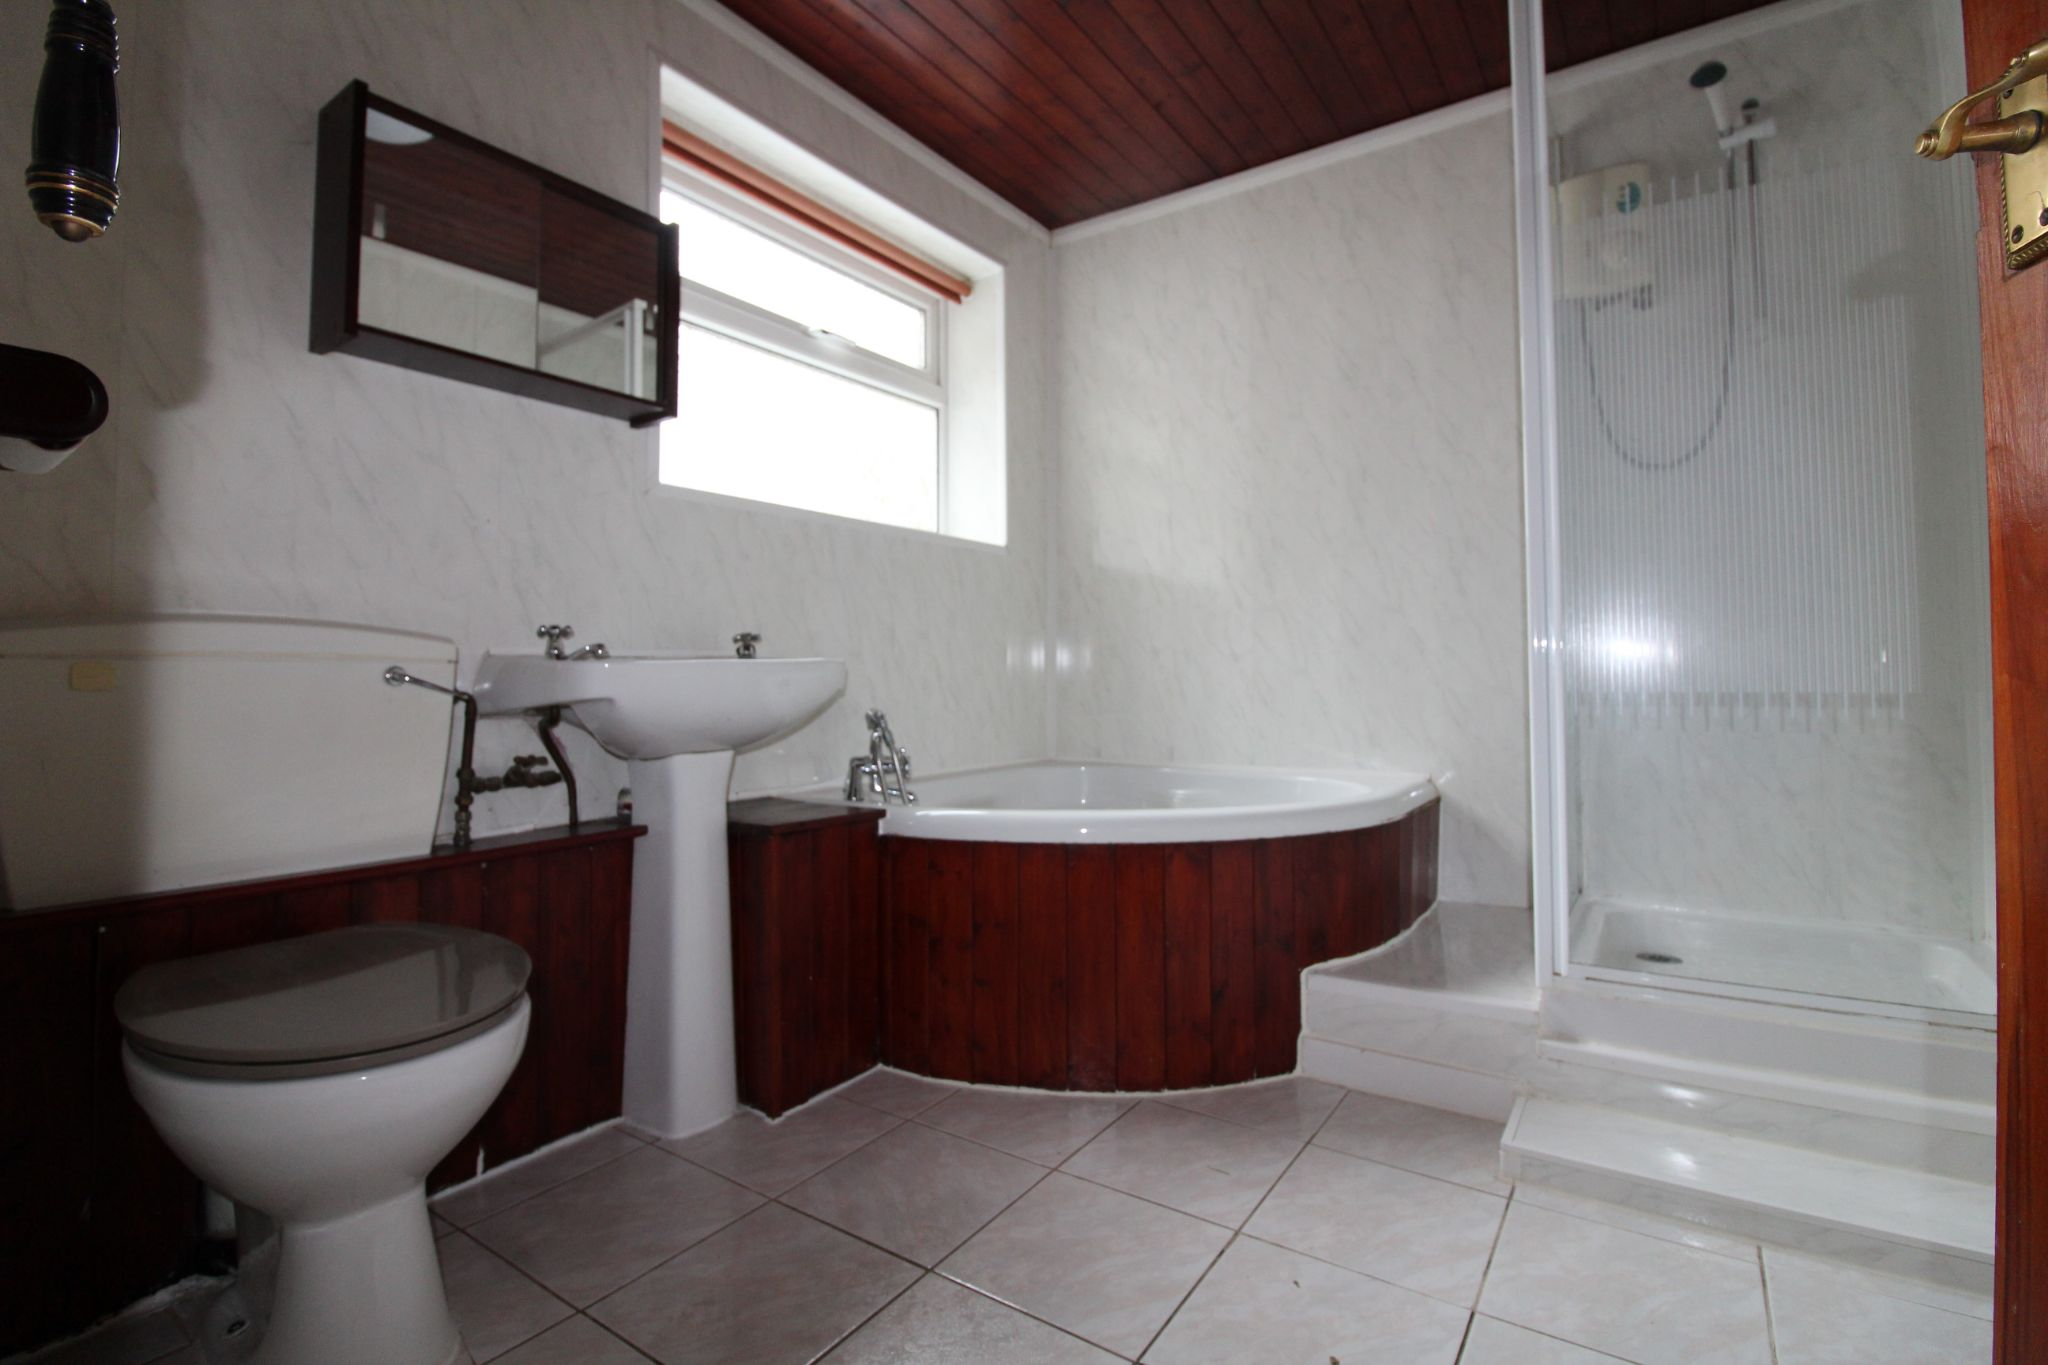 3 bedroom end terraced house For Sale in Willington And Hunwick - Photograph 11.